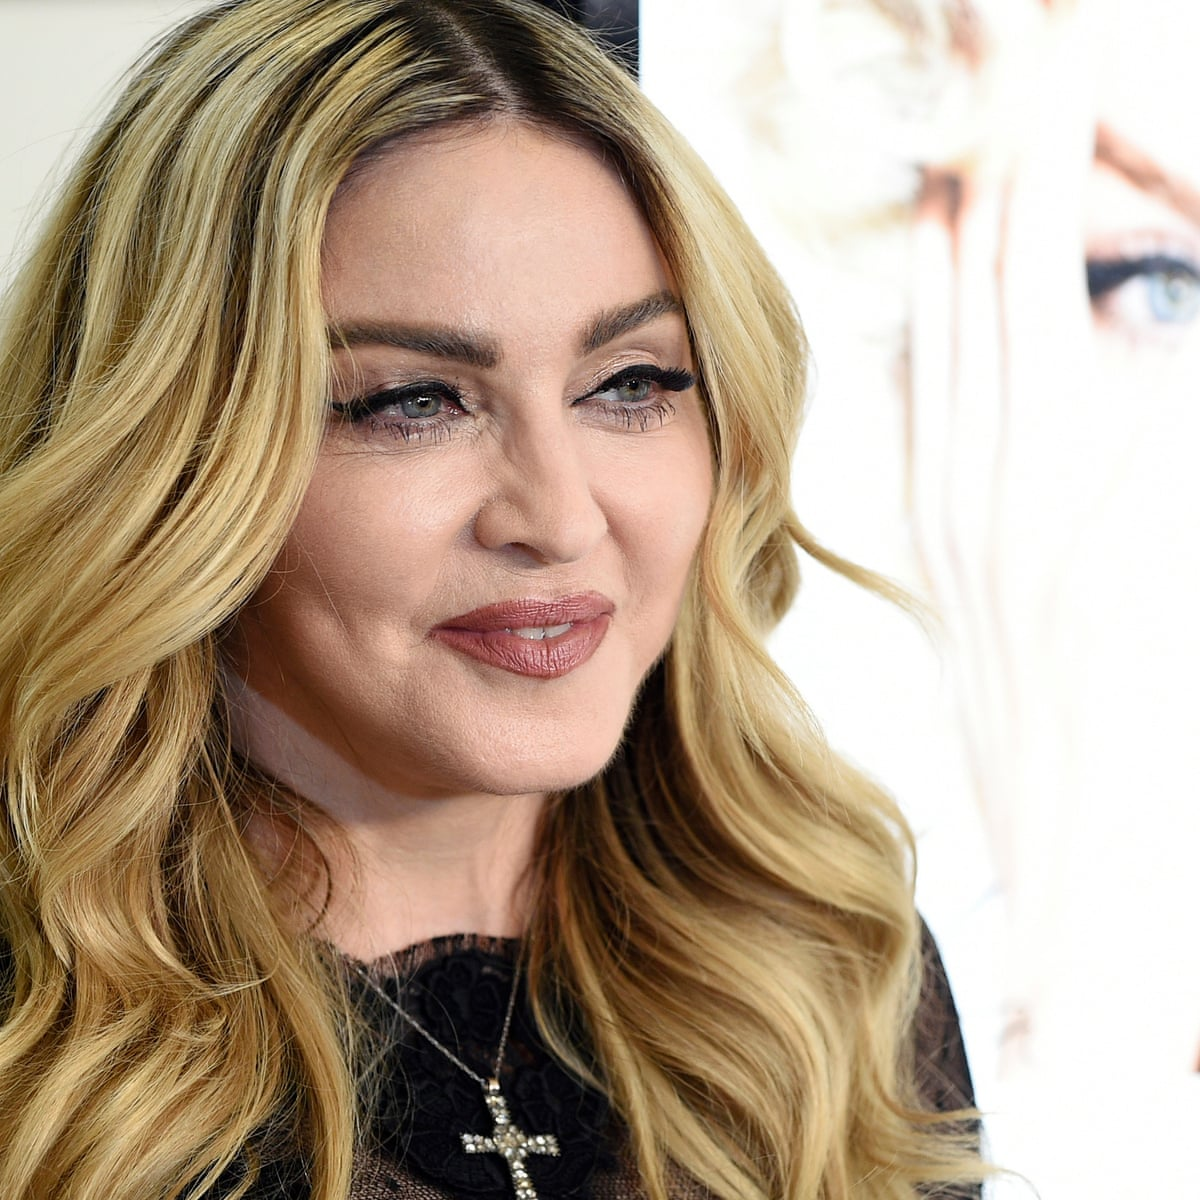 Express yourself: why Madonna directing her own biopic isn't as ominous as it sounds | Biopics | The Guardian